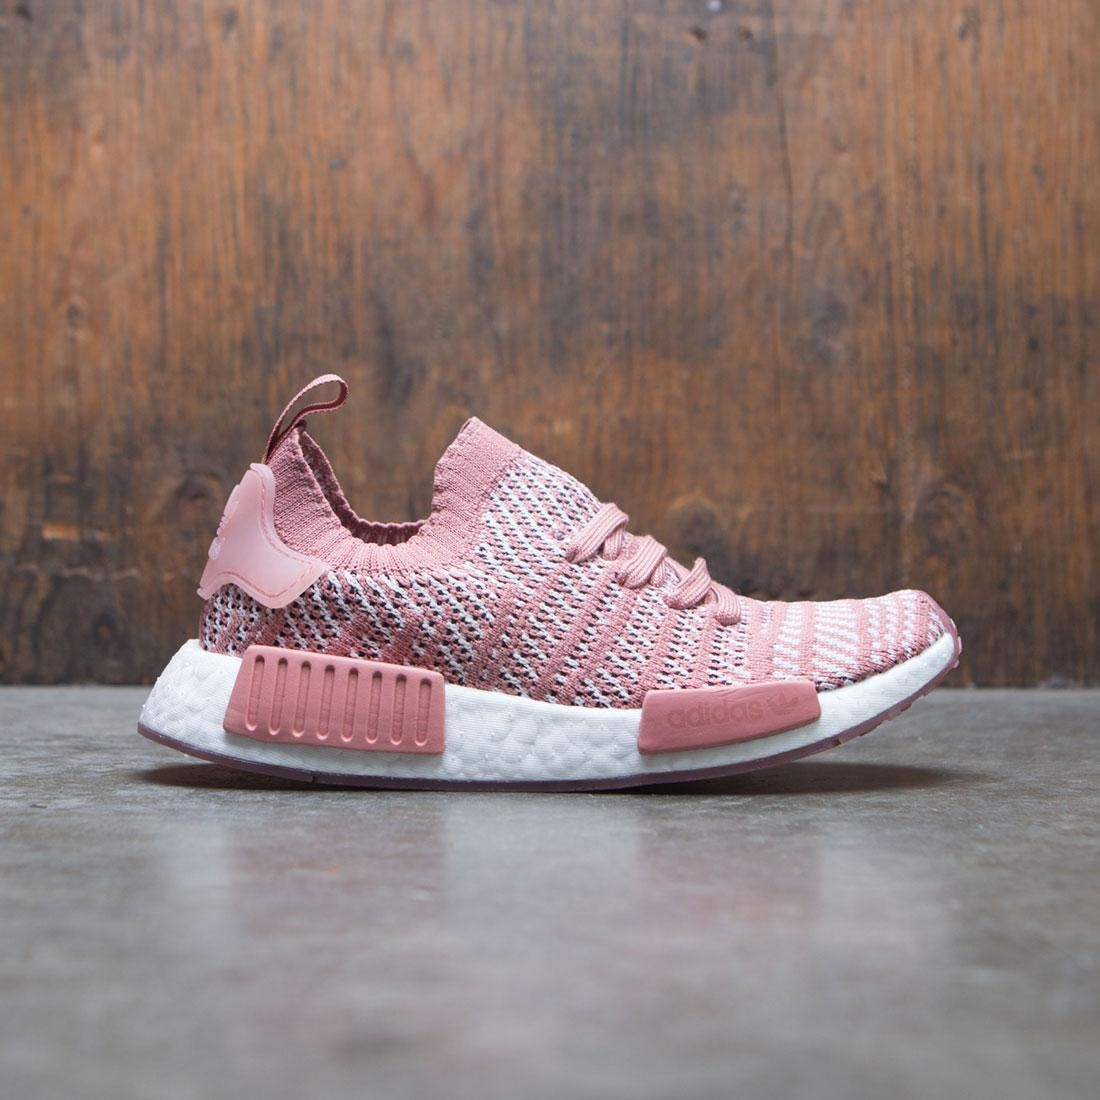 check out b3005 e10be Adidas Women NMD R1 STLT Primeknit W pink ash pink orchid tint footwear  white